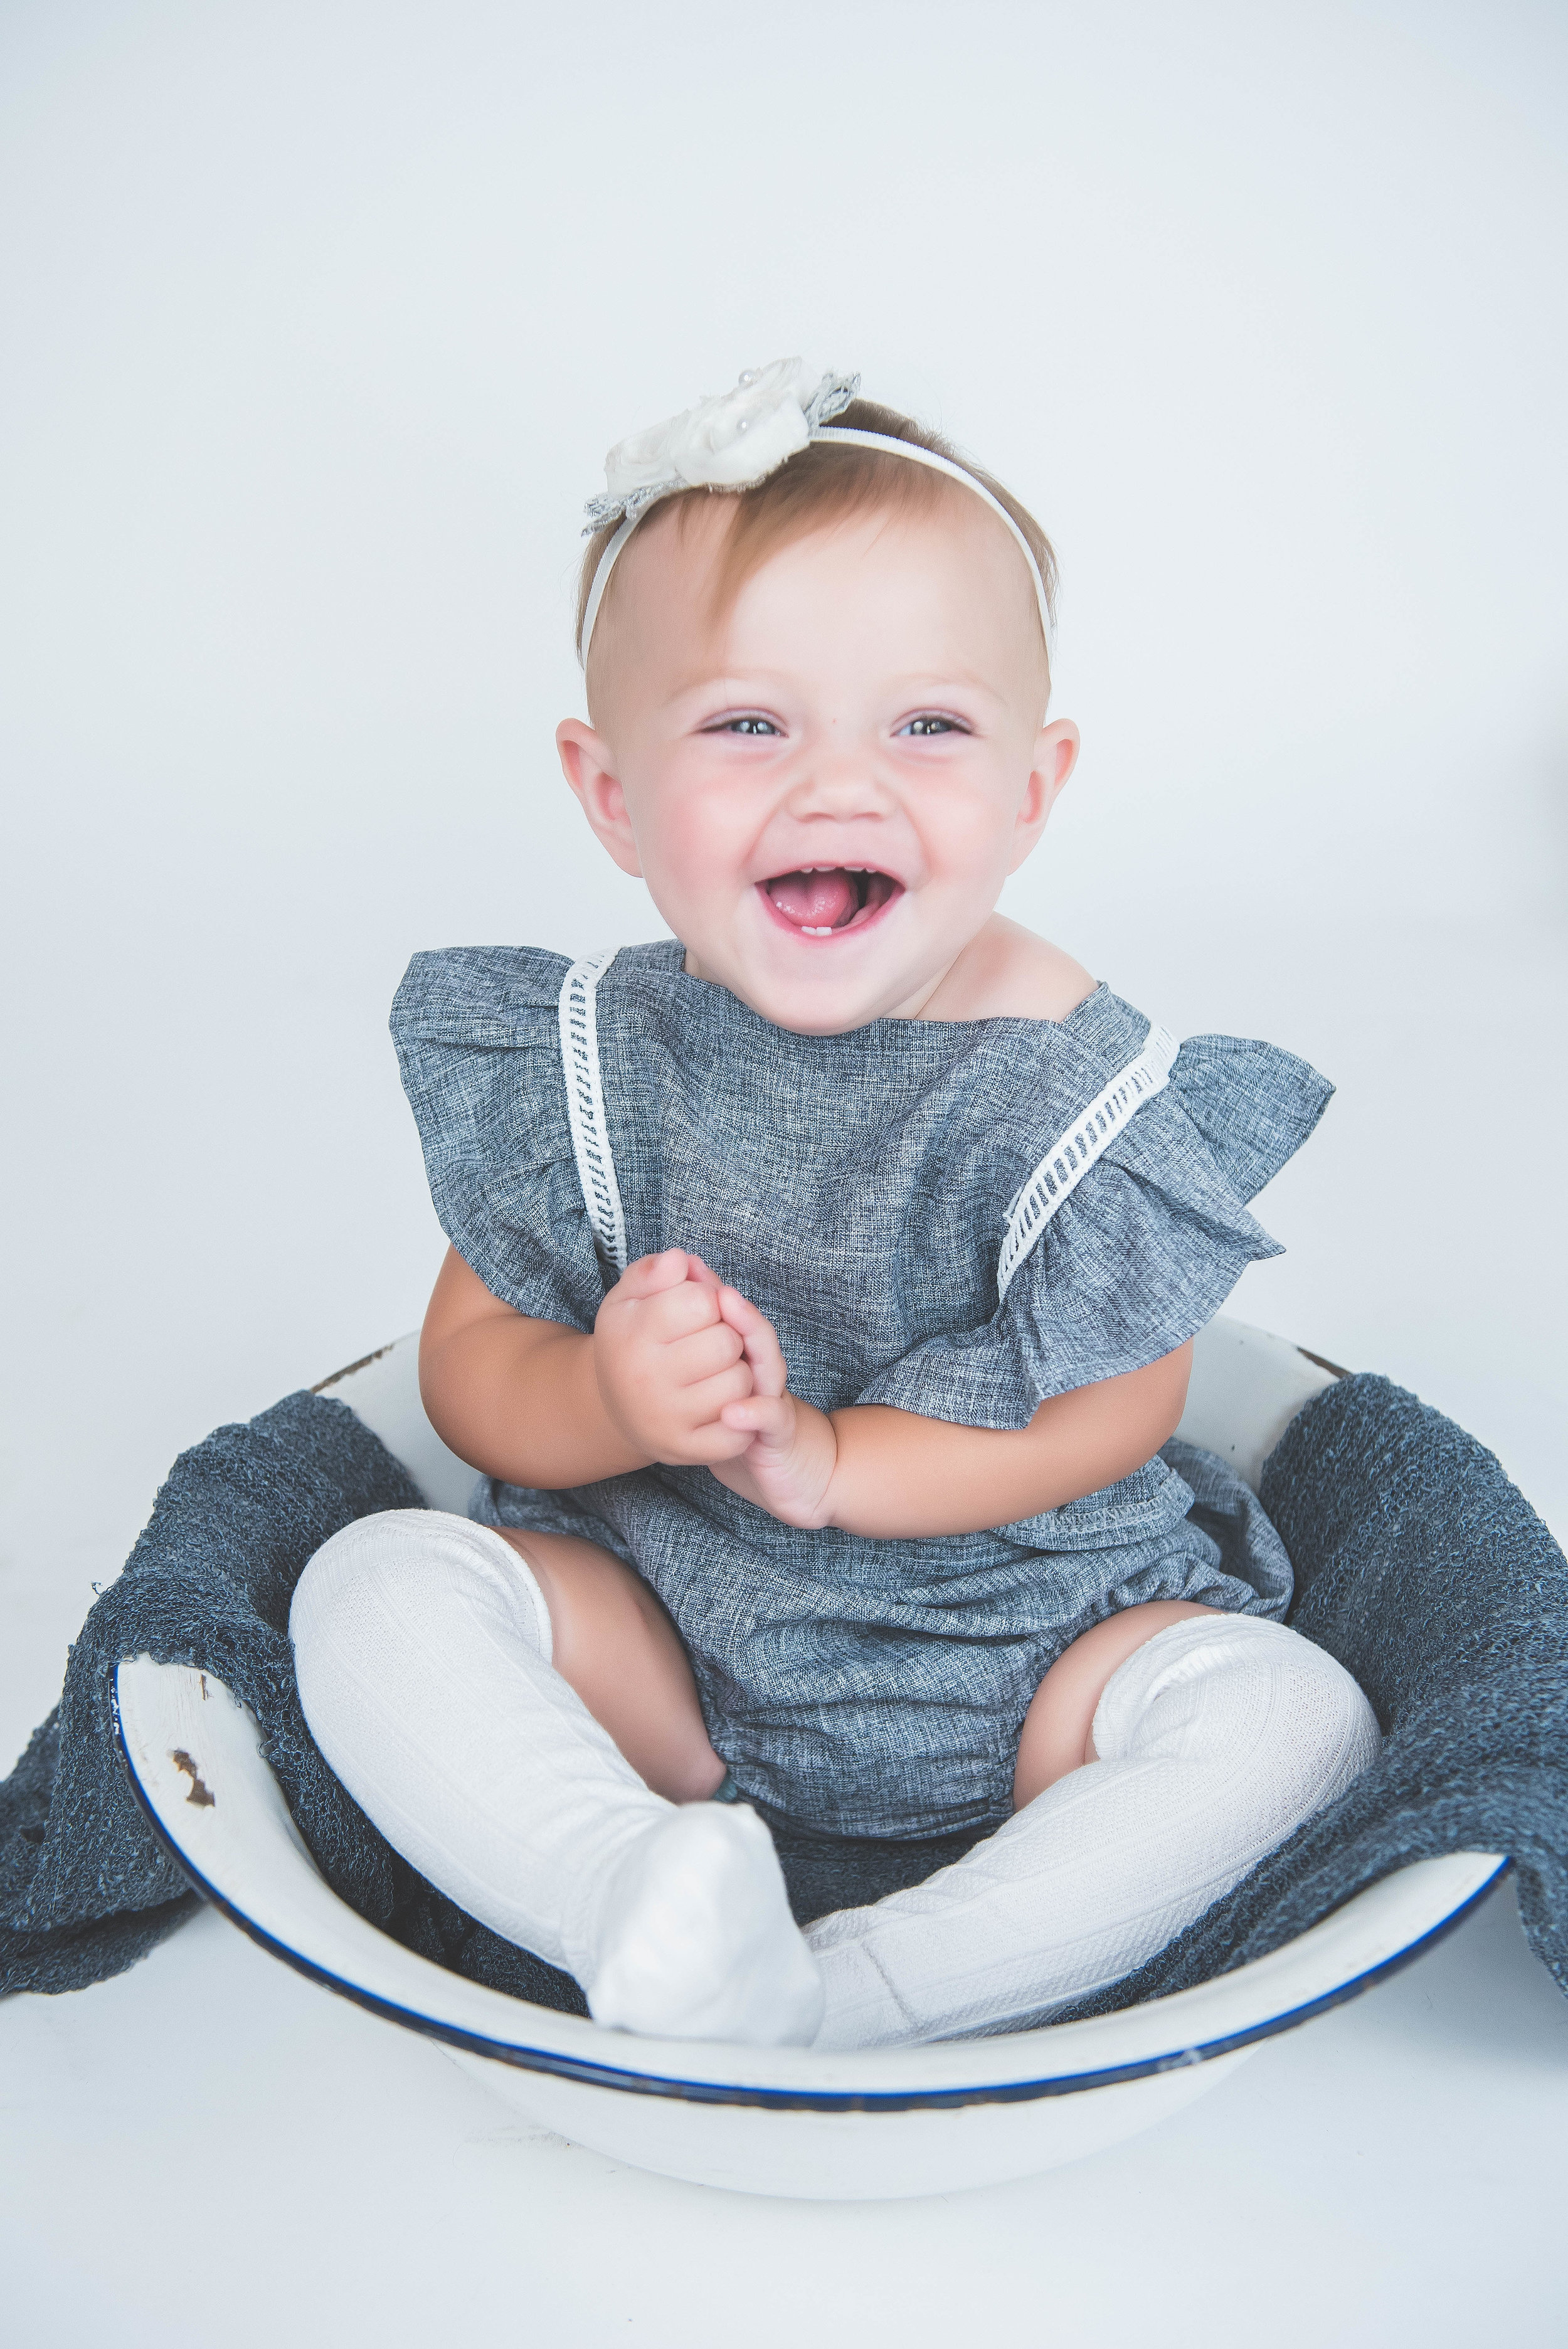 baby giggles photo